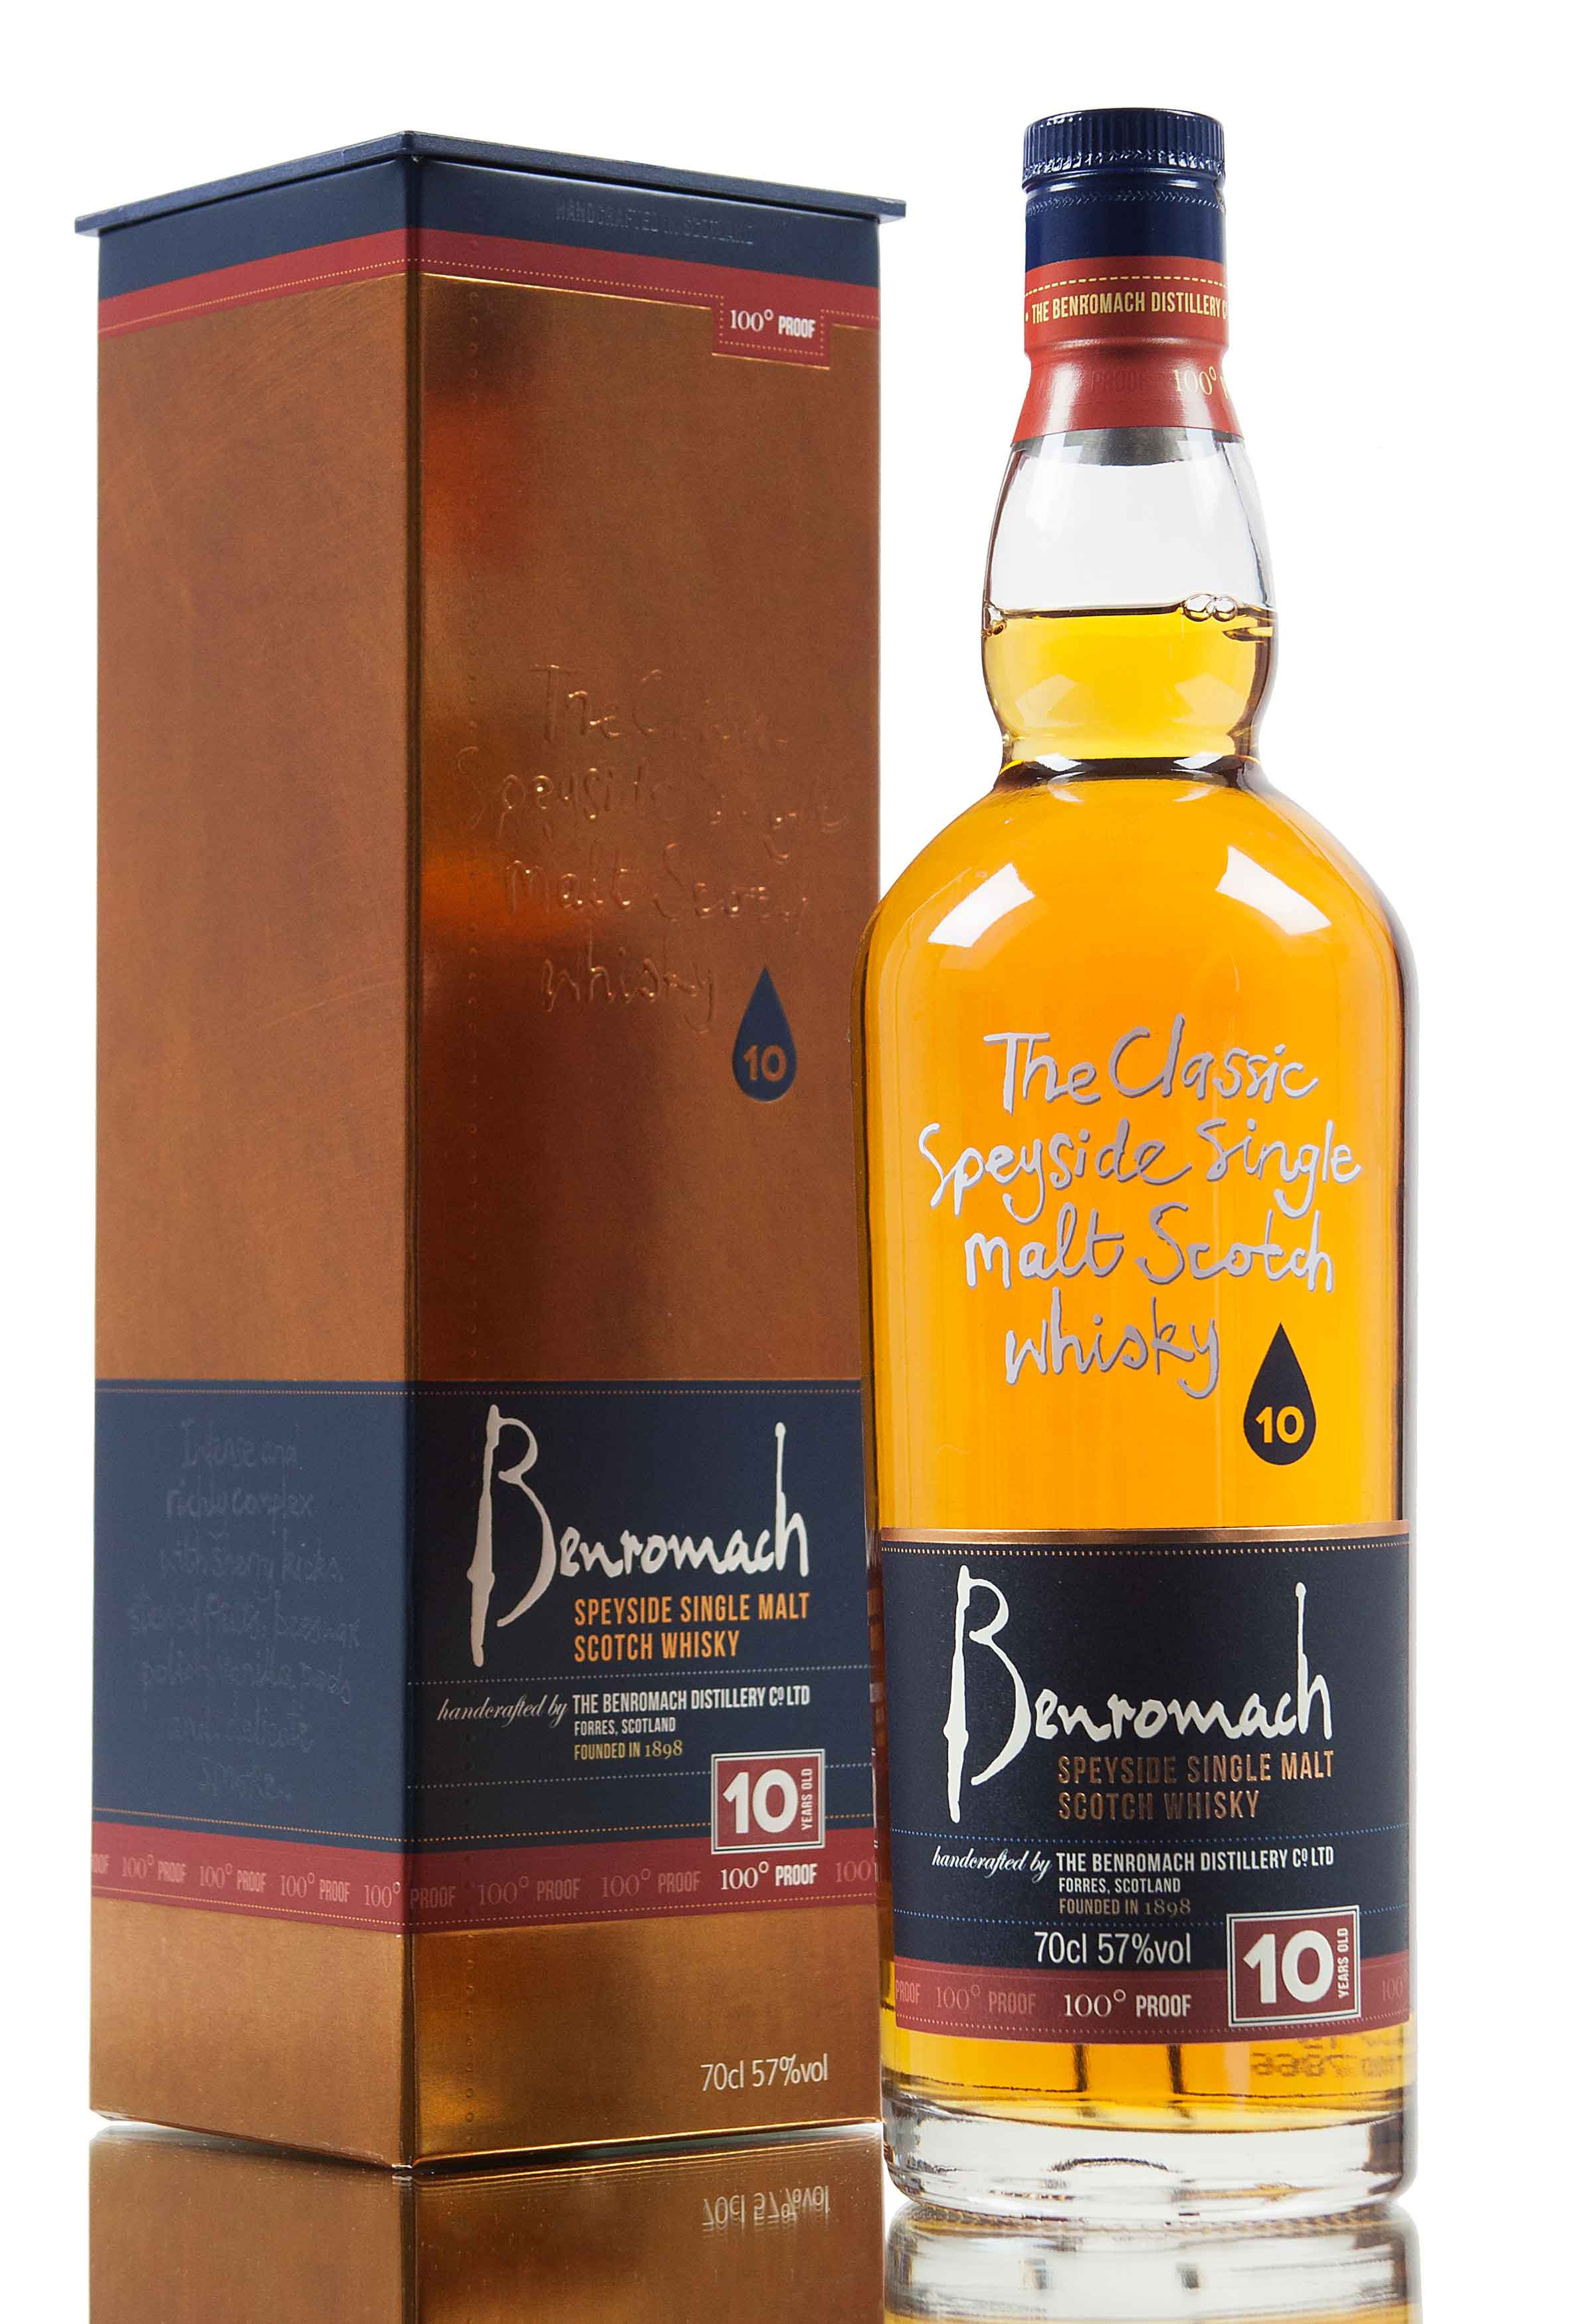 Benromach 10 Year Old / 100° Proof